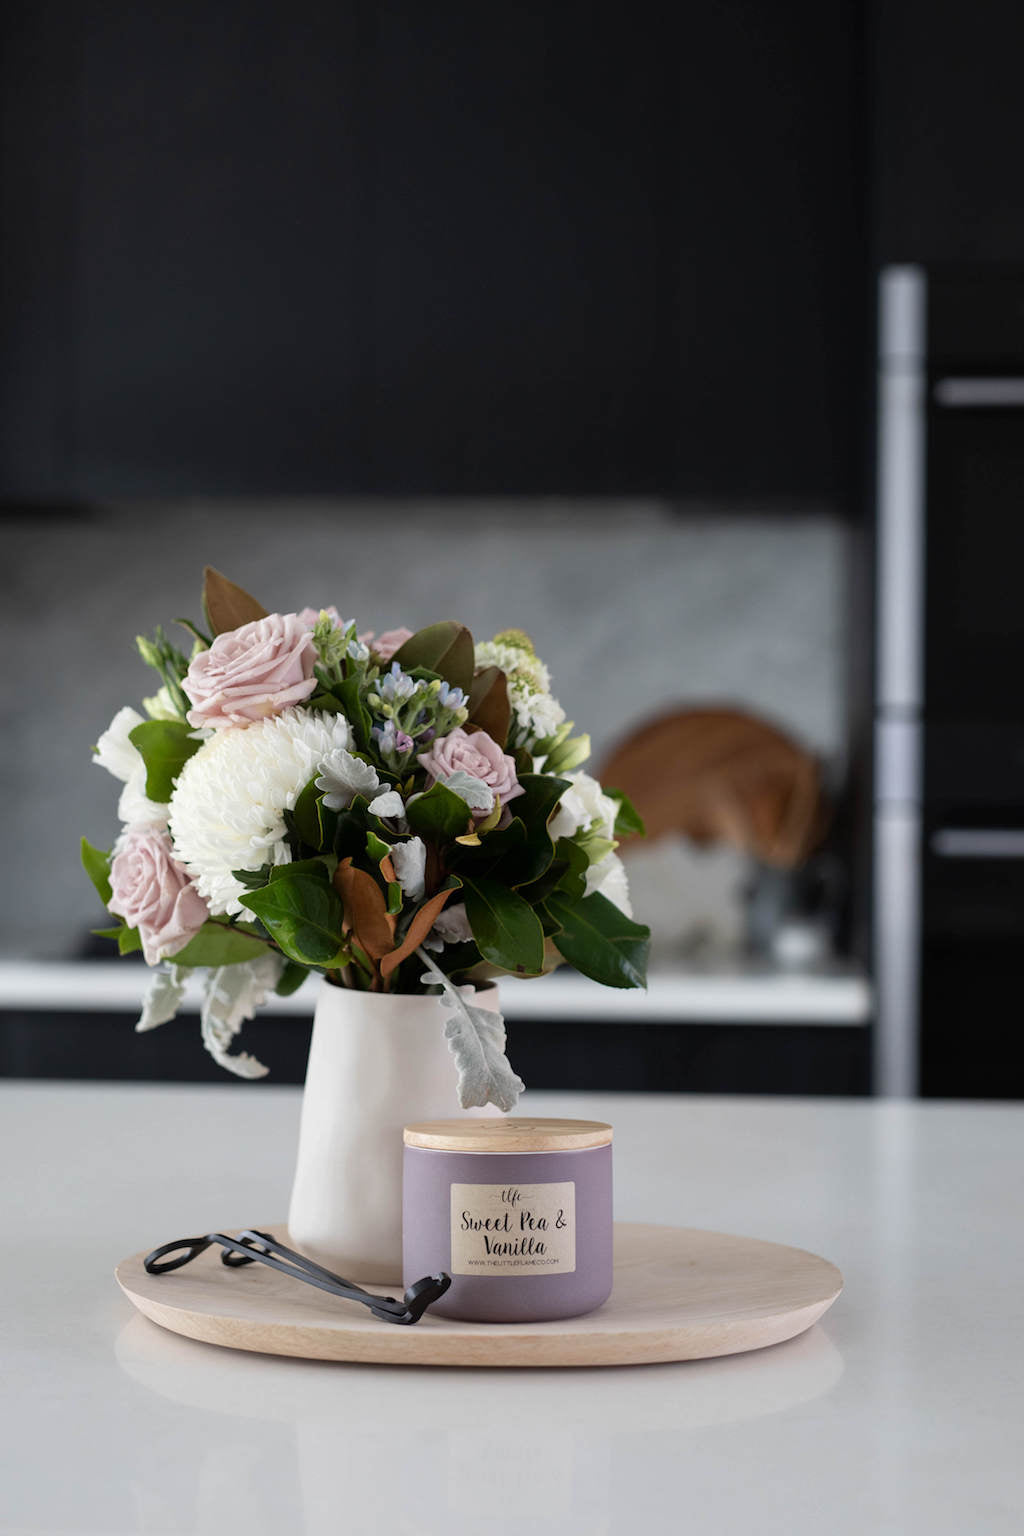 Sweet Pea and Vanilla Canister Candle